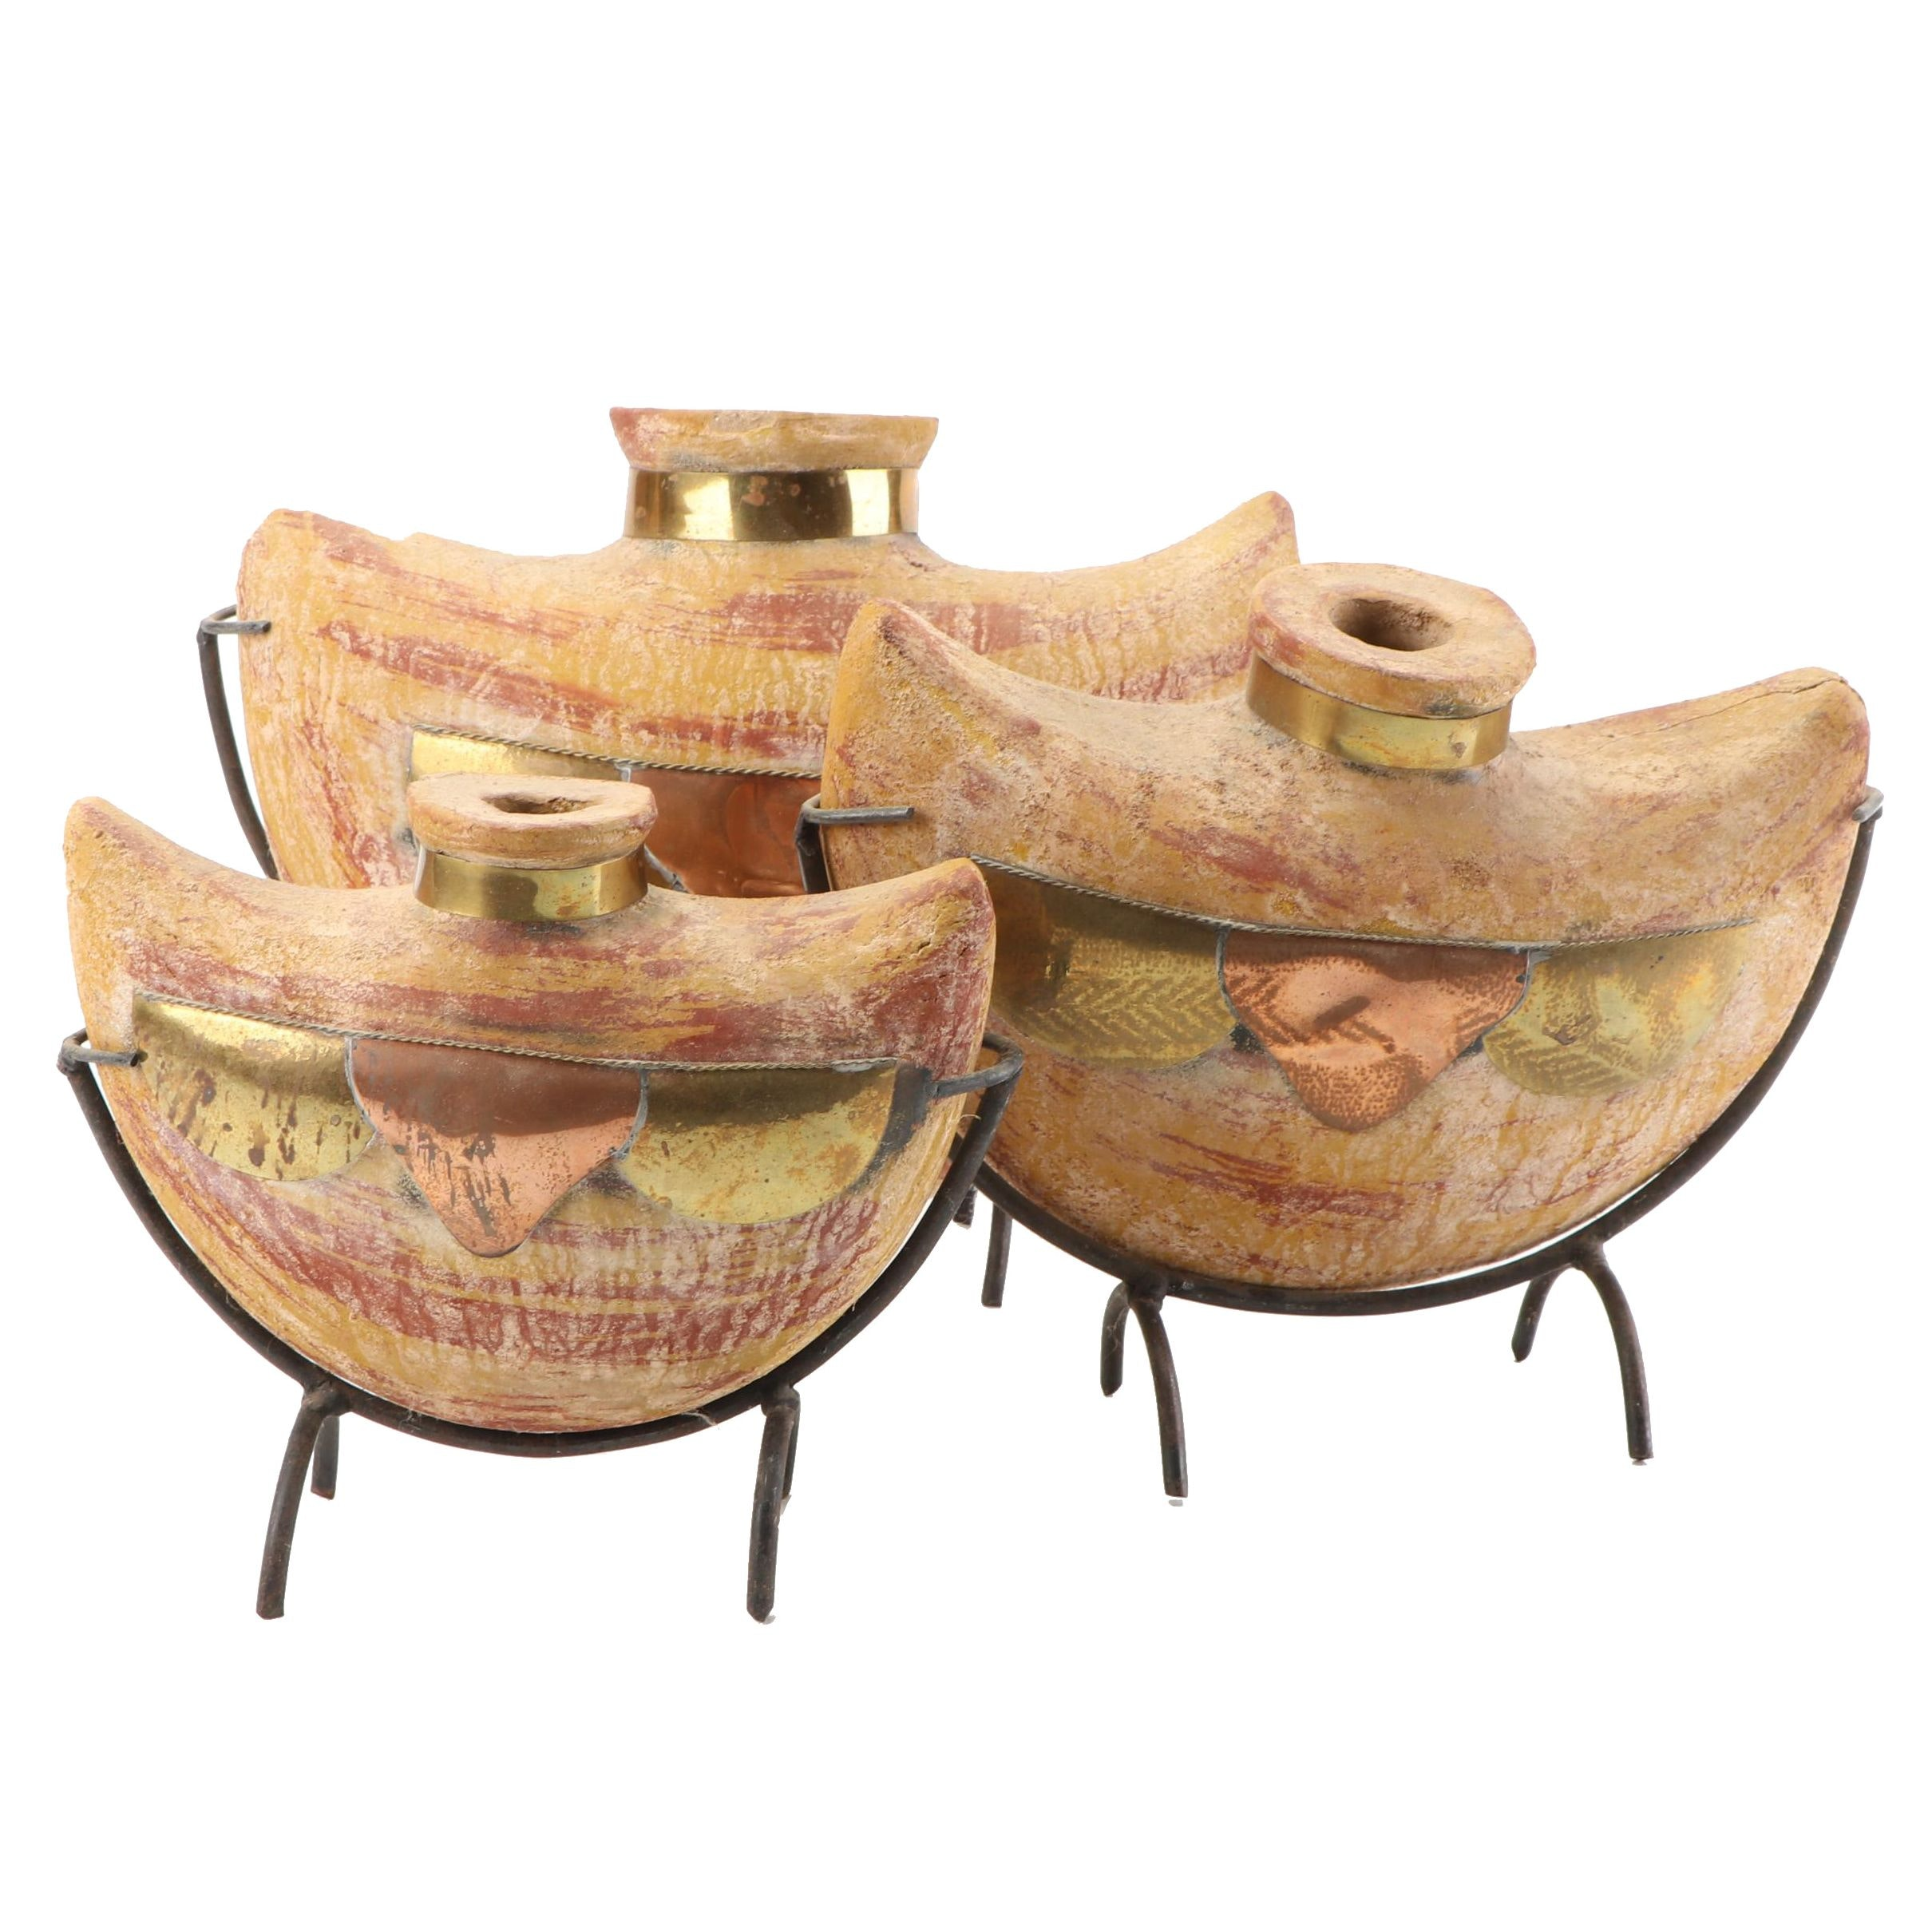 Earthenware Vases With Inlay Copper and Brass Plates on Stands, Contemporary